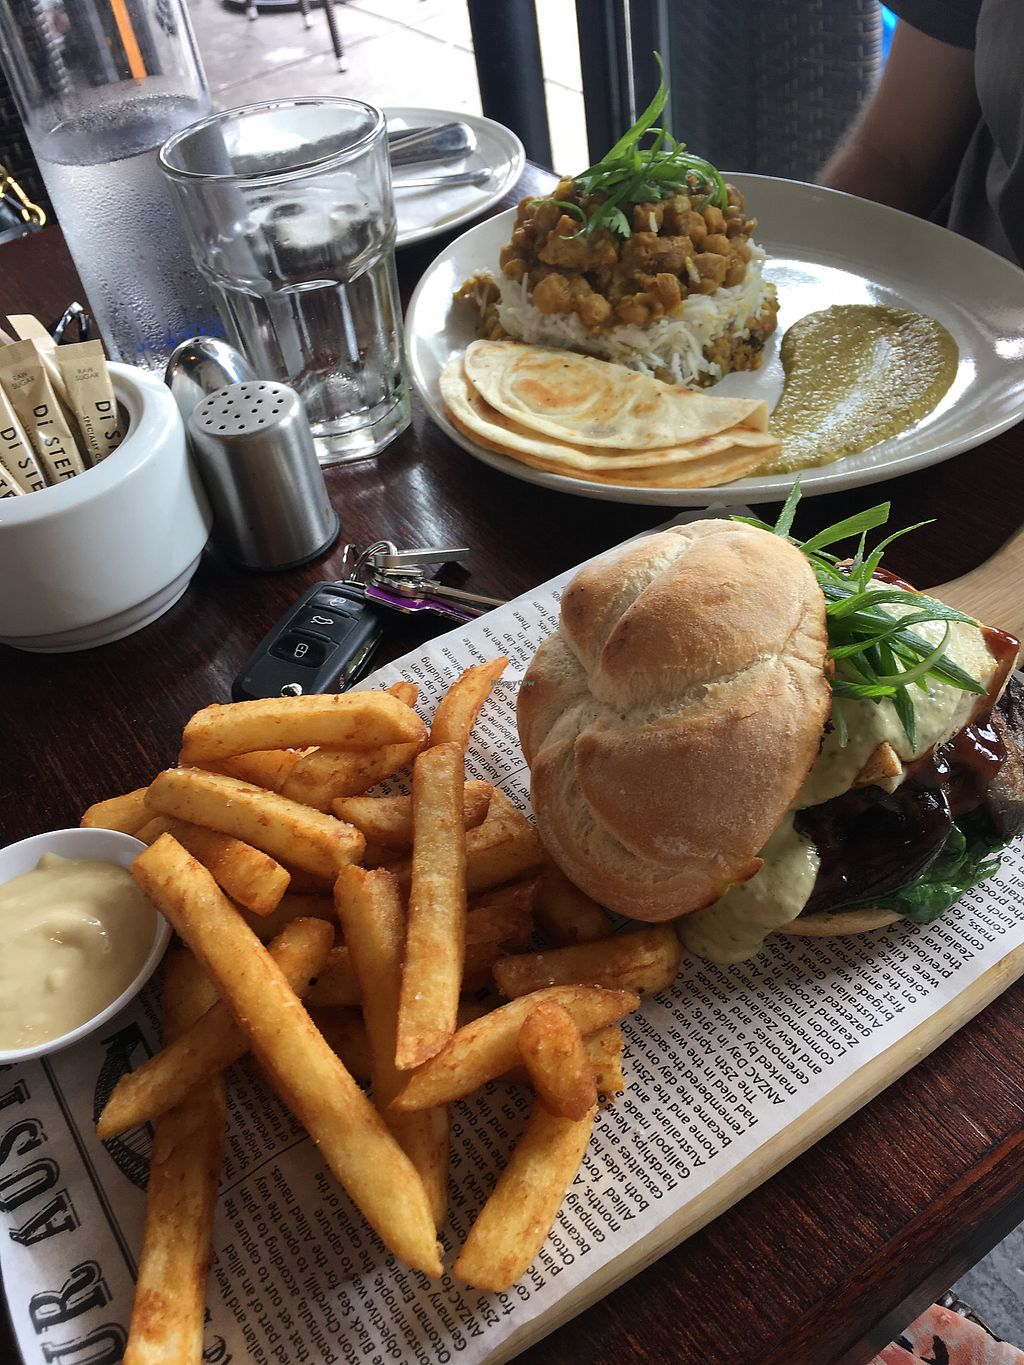 "Photo of Cafe Nowa  by <a href=""/members/profile/Emmiu"">Emmiu</a> <br/>Tofu and eggplant burger & tofu and chickpea curry  <br/> March 4, 2018  - <a href='/contact/abuse/image/109117/366417'>Report</a>"